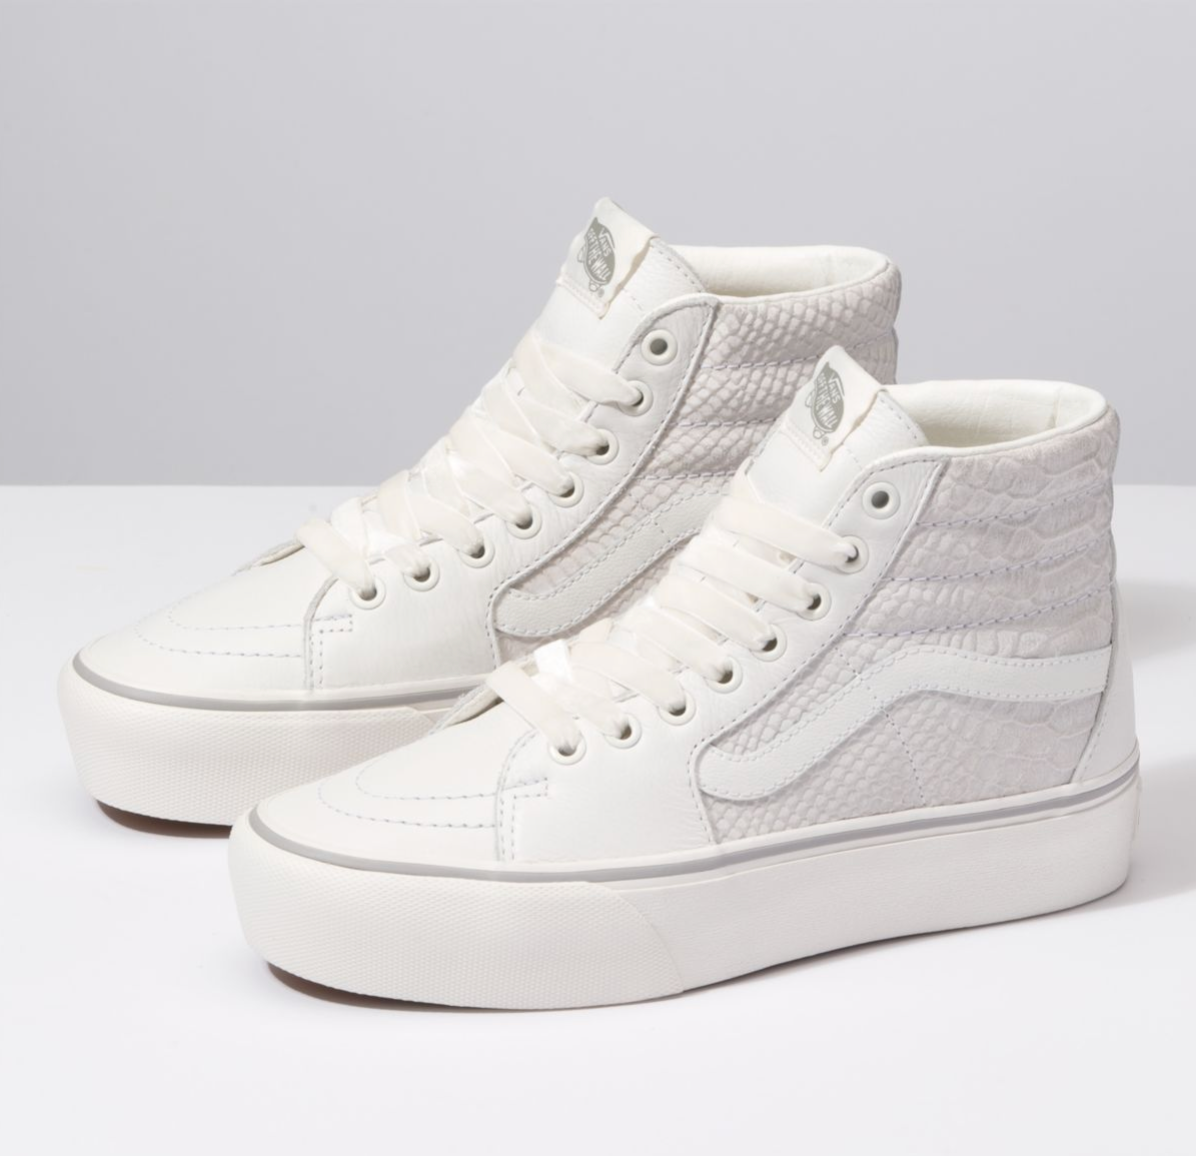 VANS SK8-HI PLATFORM - White Snakeskin Leather – Atmos New York